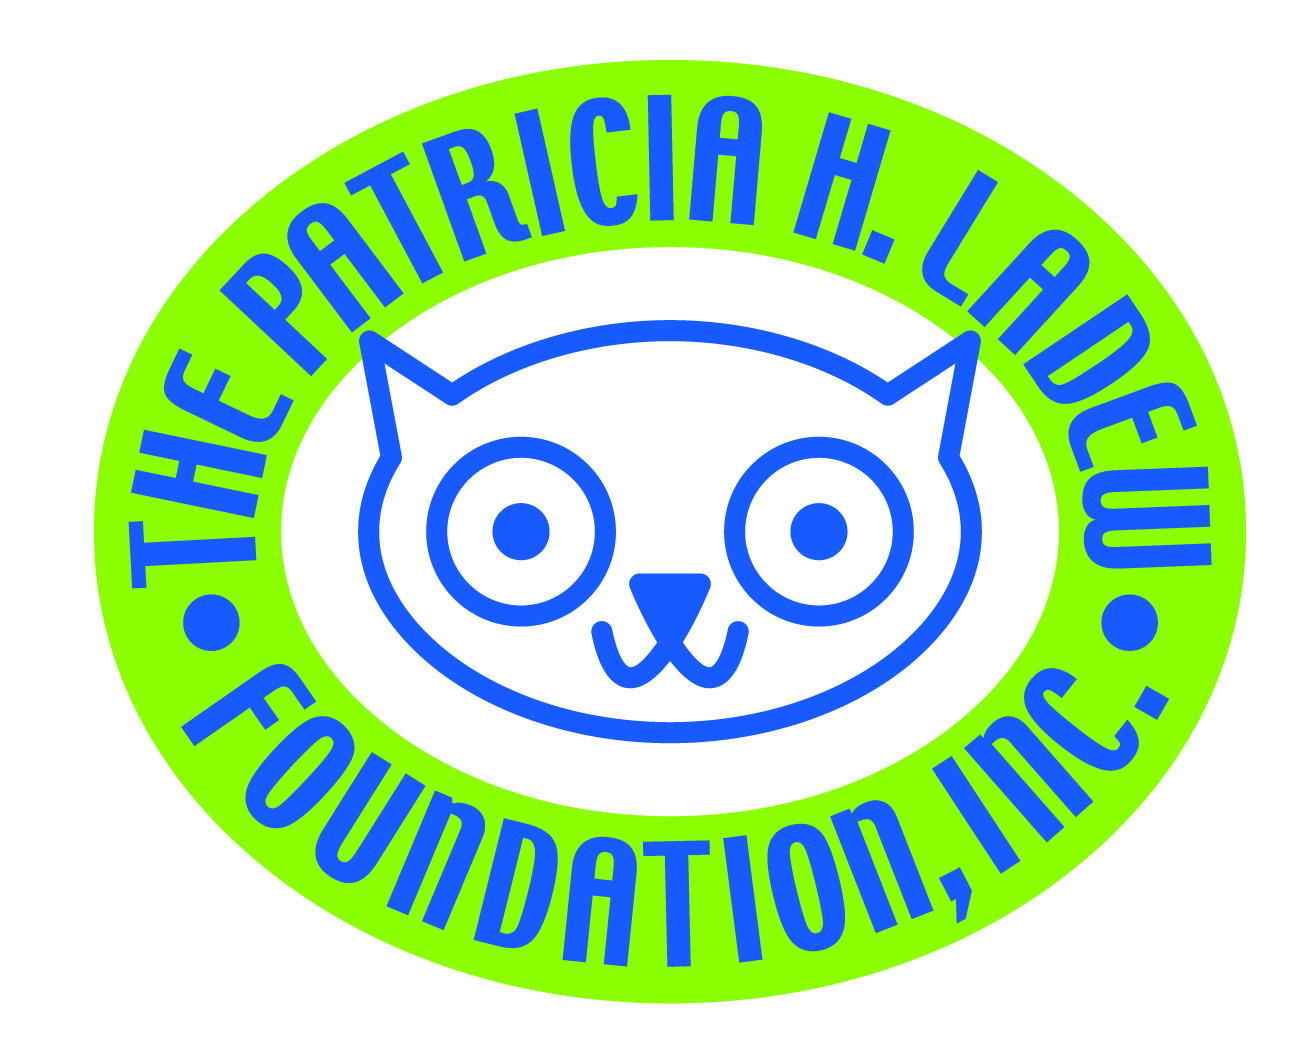 The Patricia H. Ladew Foundation